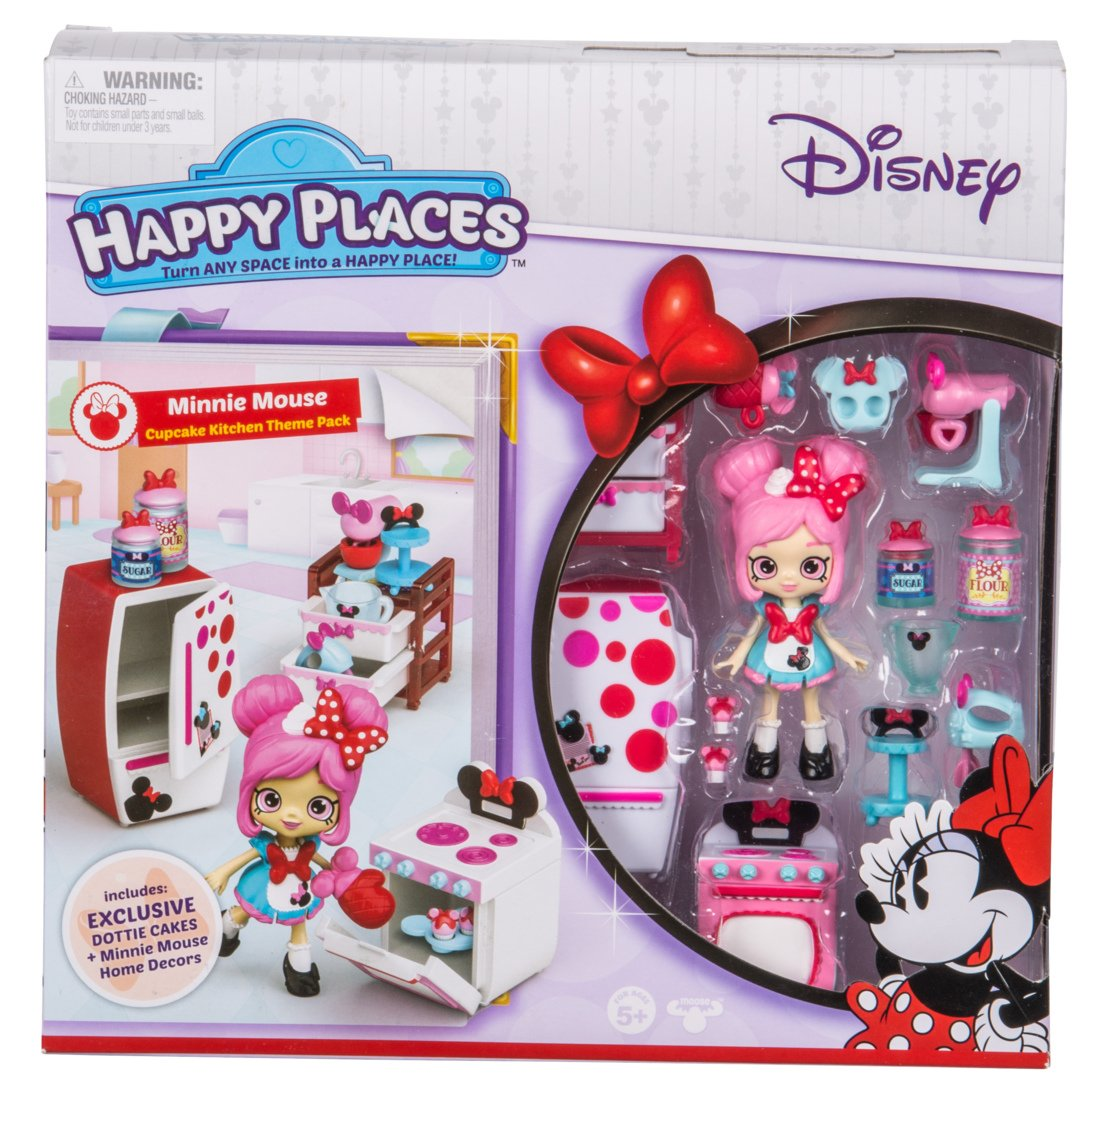 Happy Places Disney Season 1 Minnie Mouse Cupcake Kitchen Theme Pack Moose Toys Import 58110